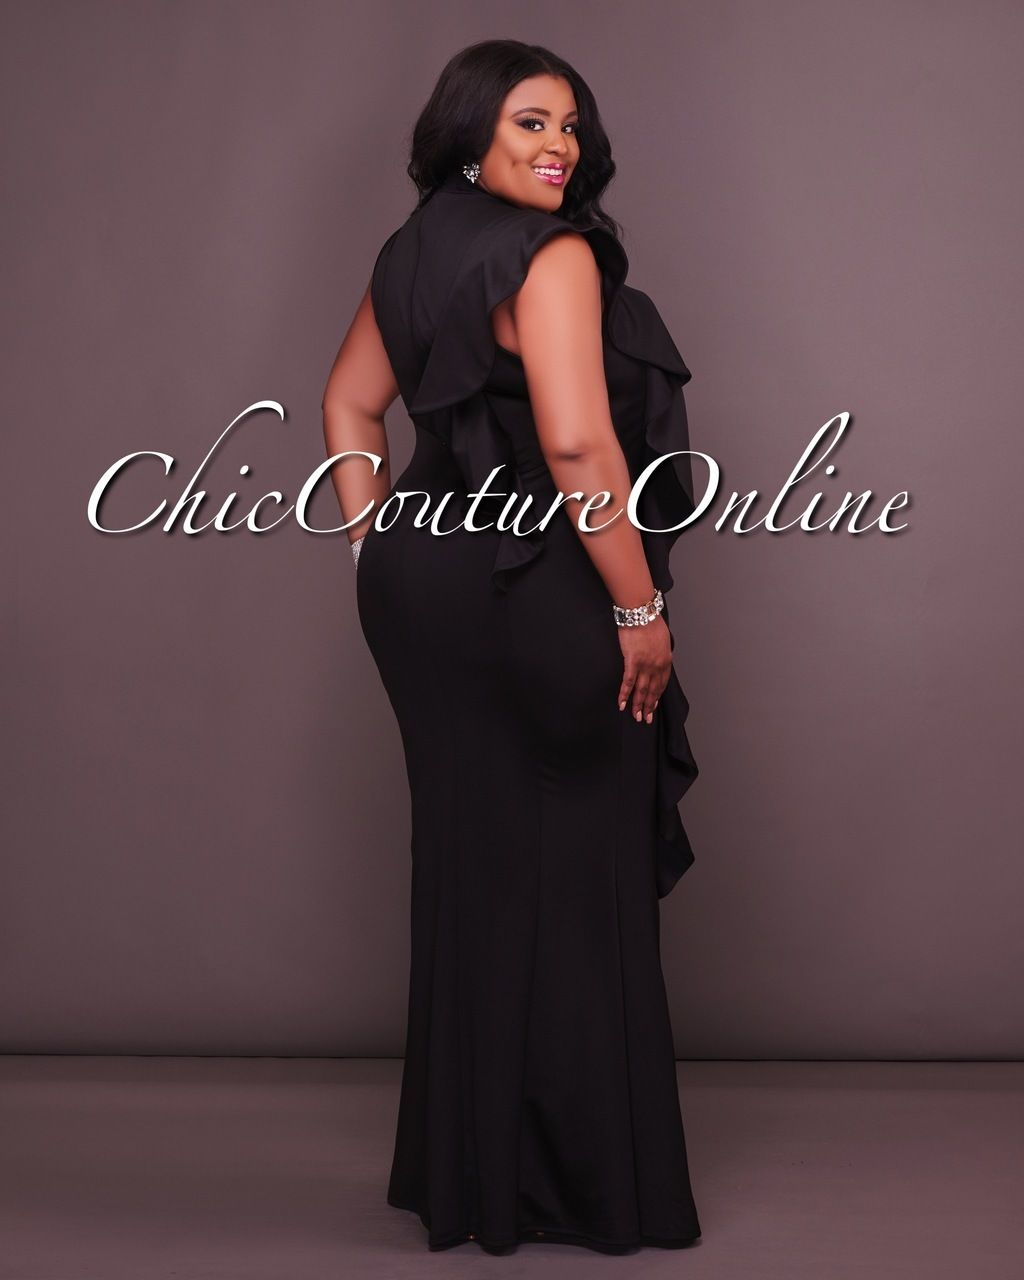 Chic couture online veronika curvaceaous black ruffle side midi